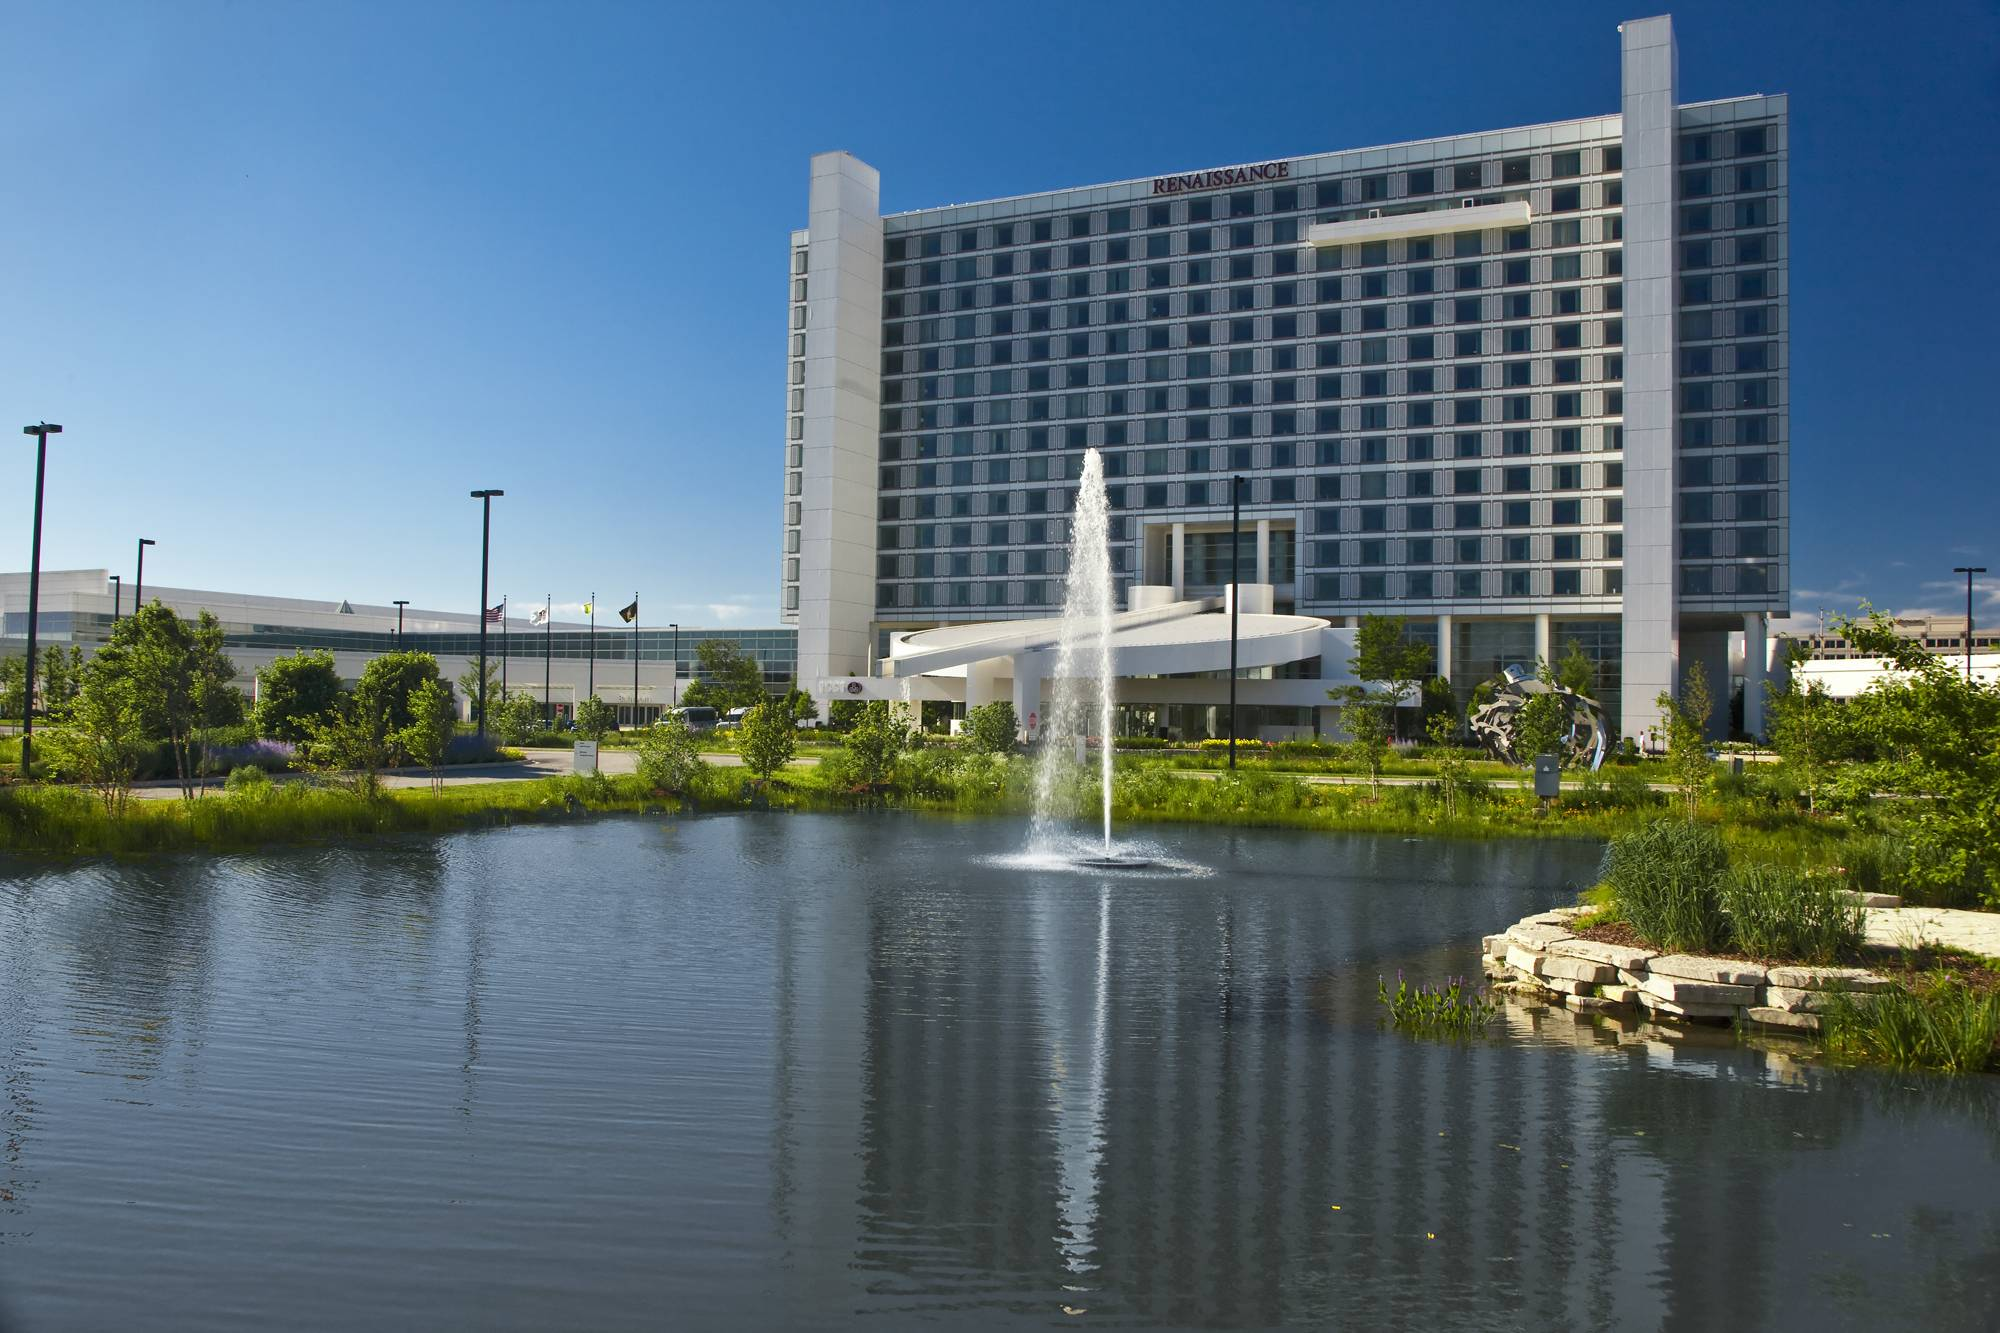 The suburbs are seeing growth in the tourism industry. One factor is that four new hotels opened in the Schaumburg area this past year, joining many others, including the Renaissance Schaumburg Convention Center Hotel.